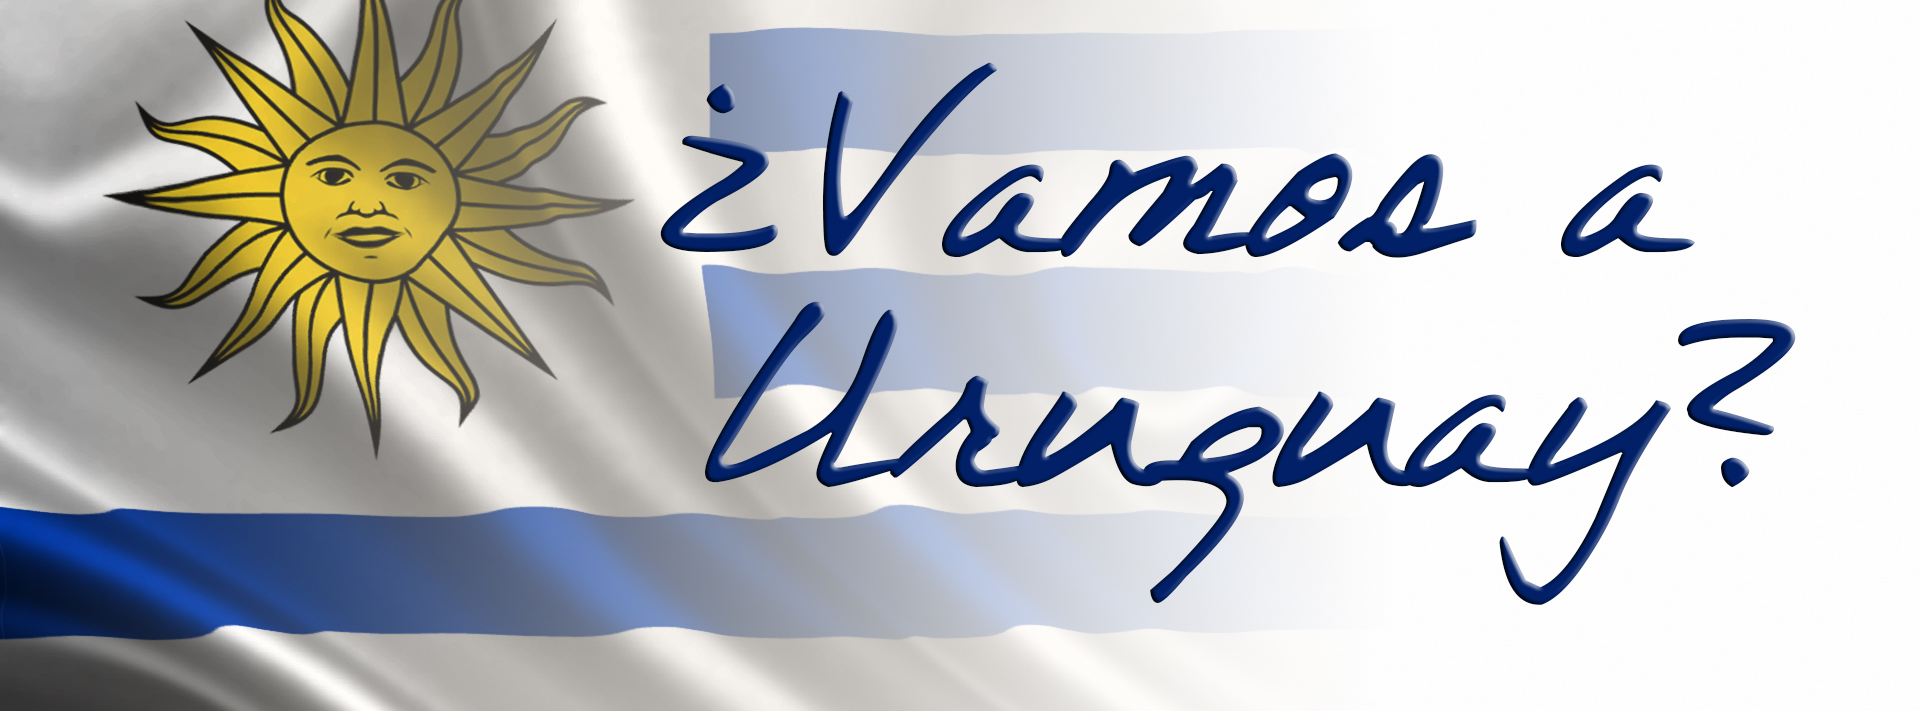 Viaggio missionario in Uruguay - Estate 2019